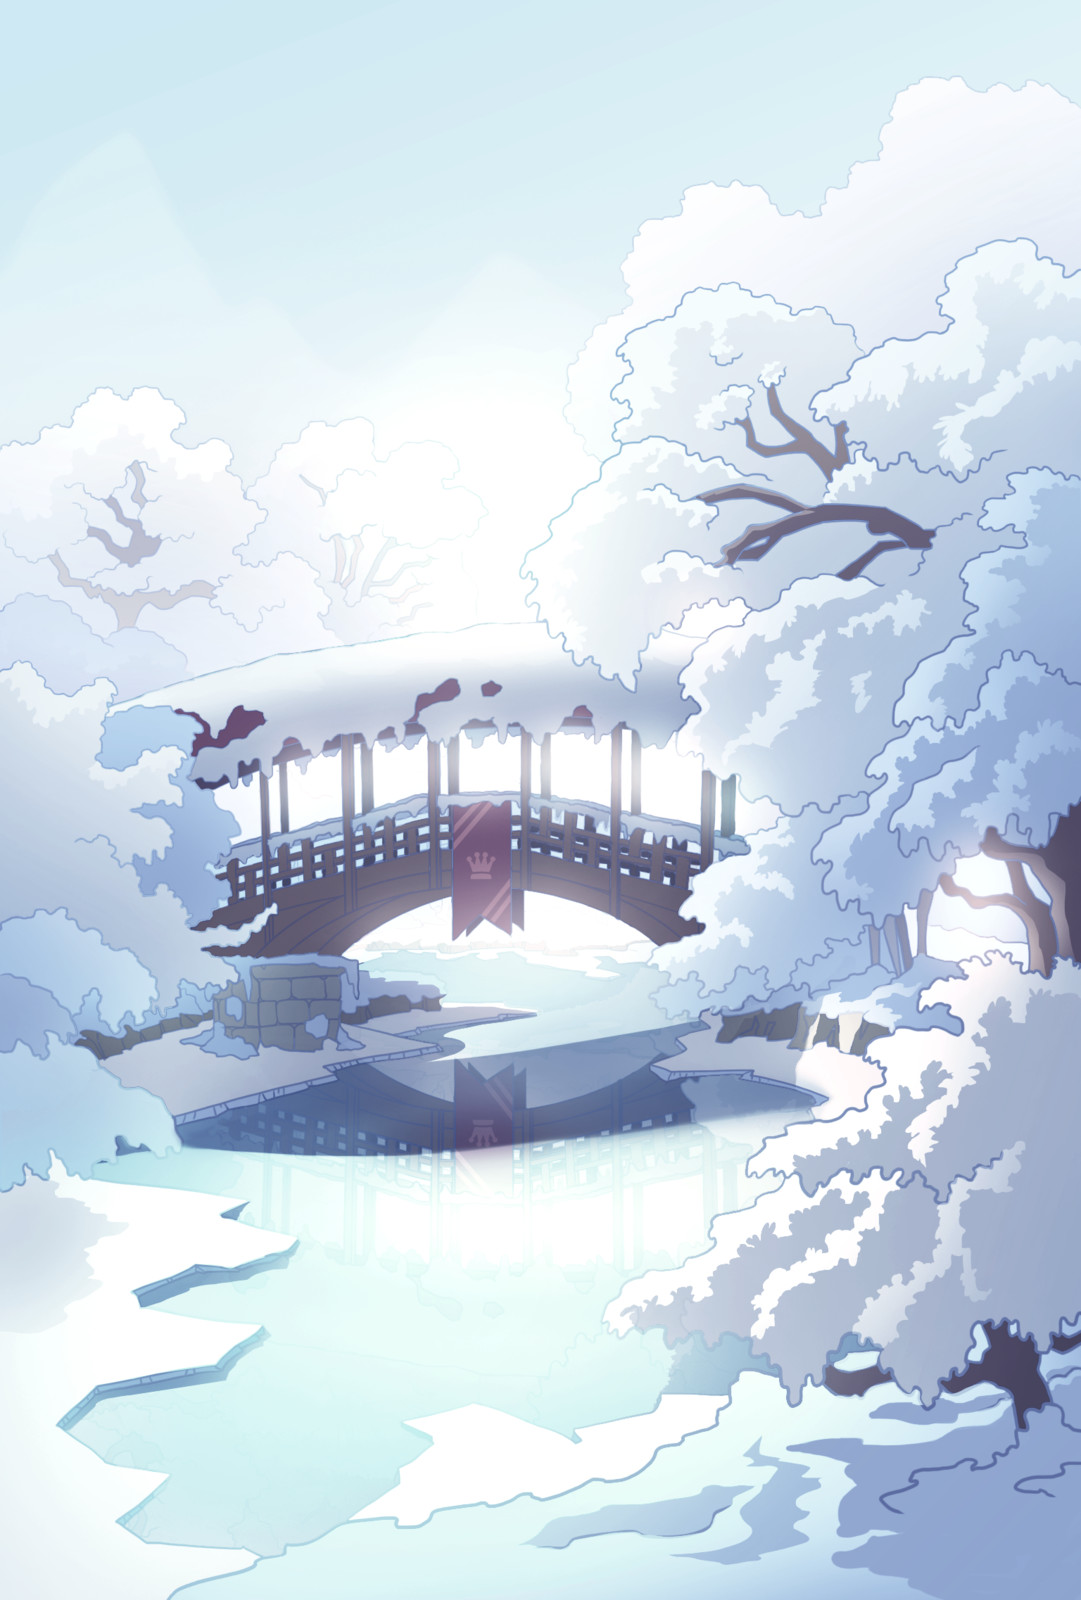 Background in game Art.